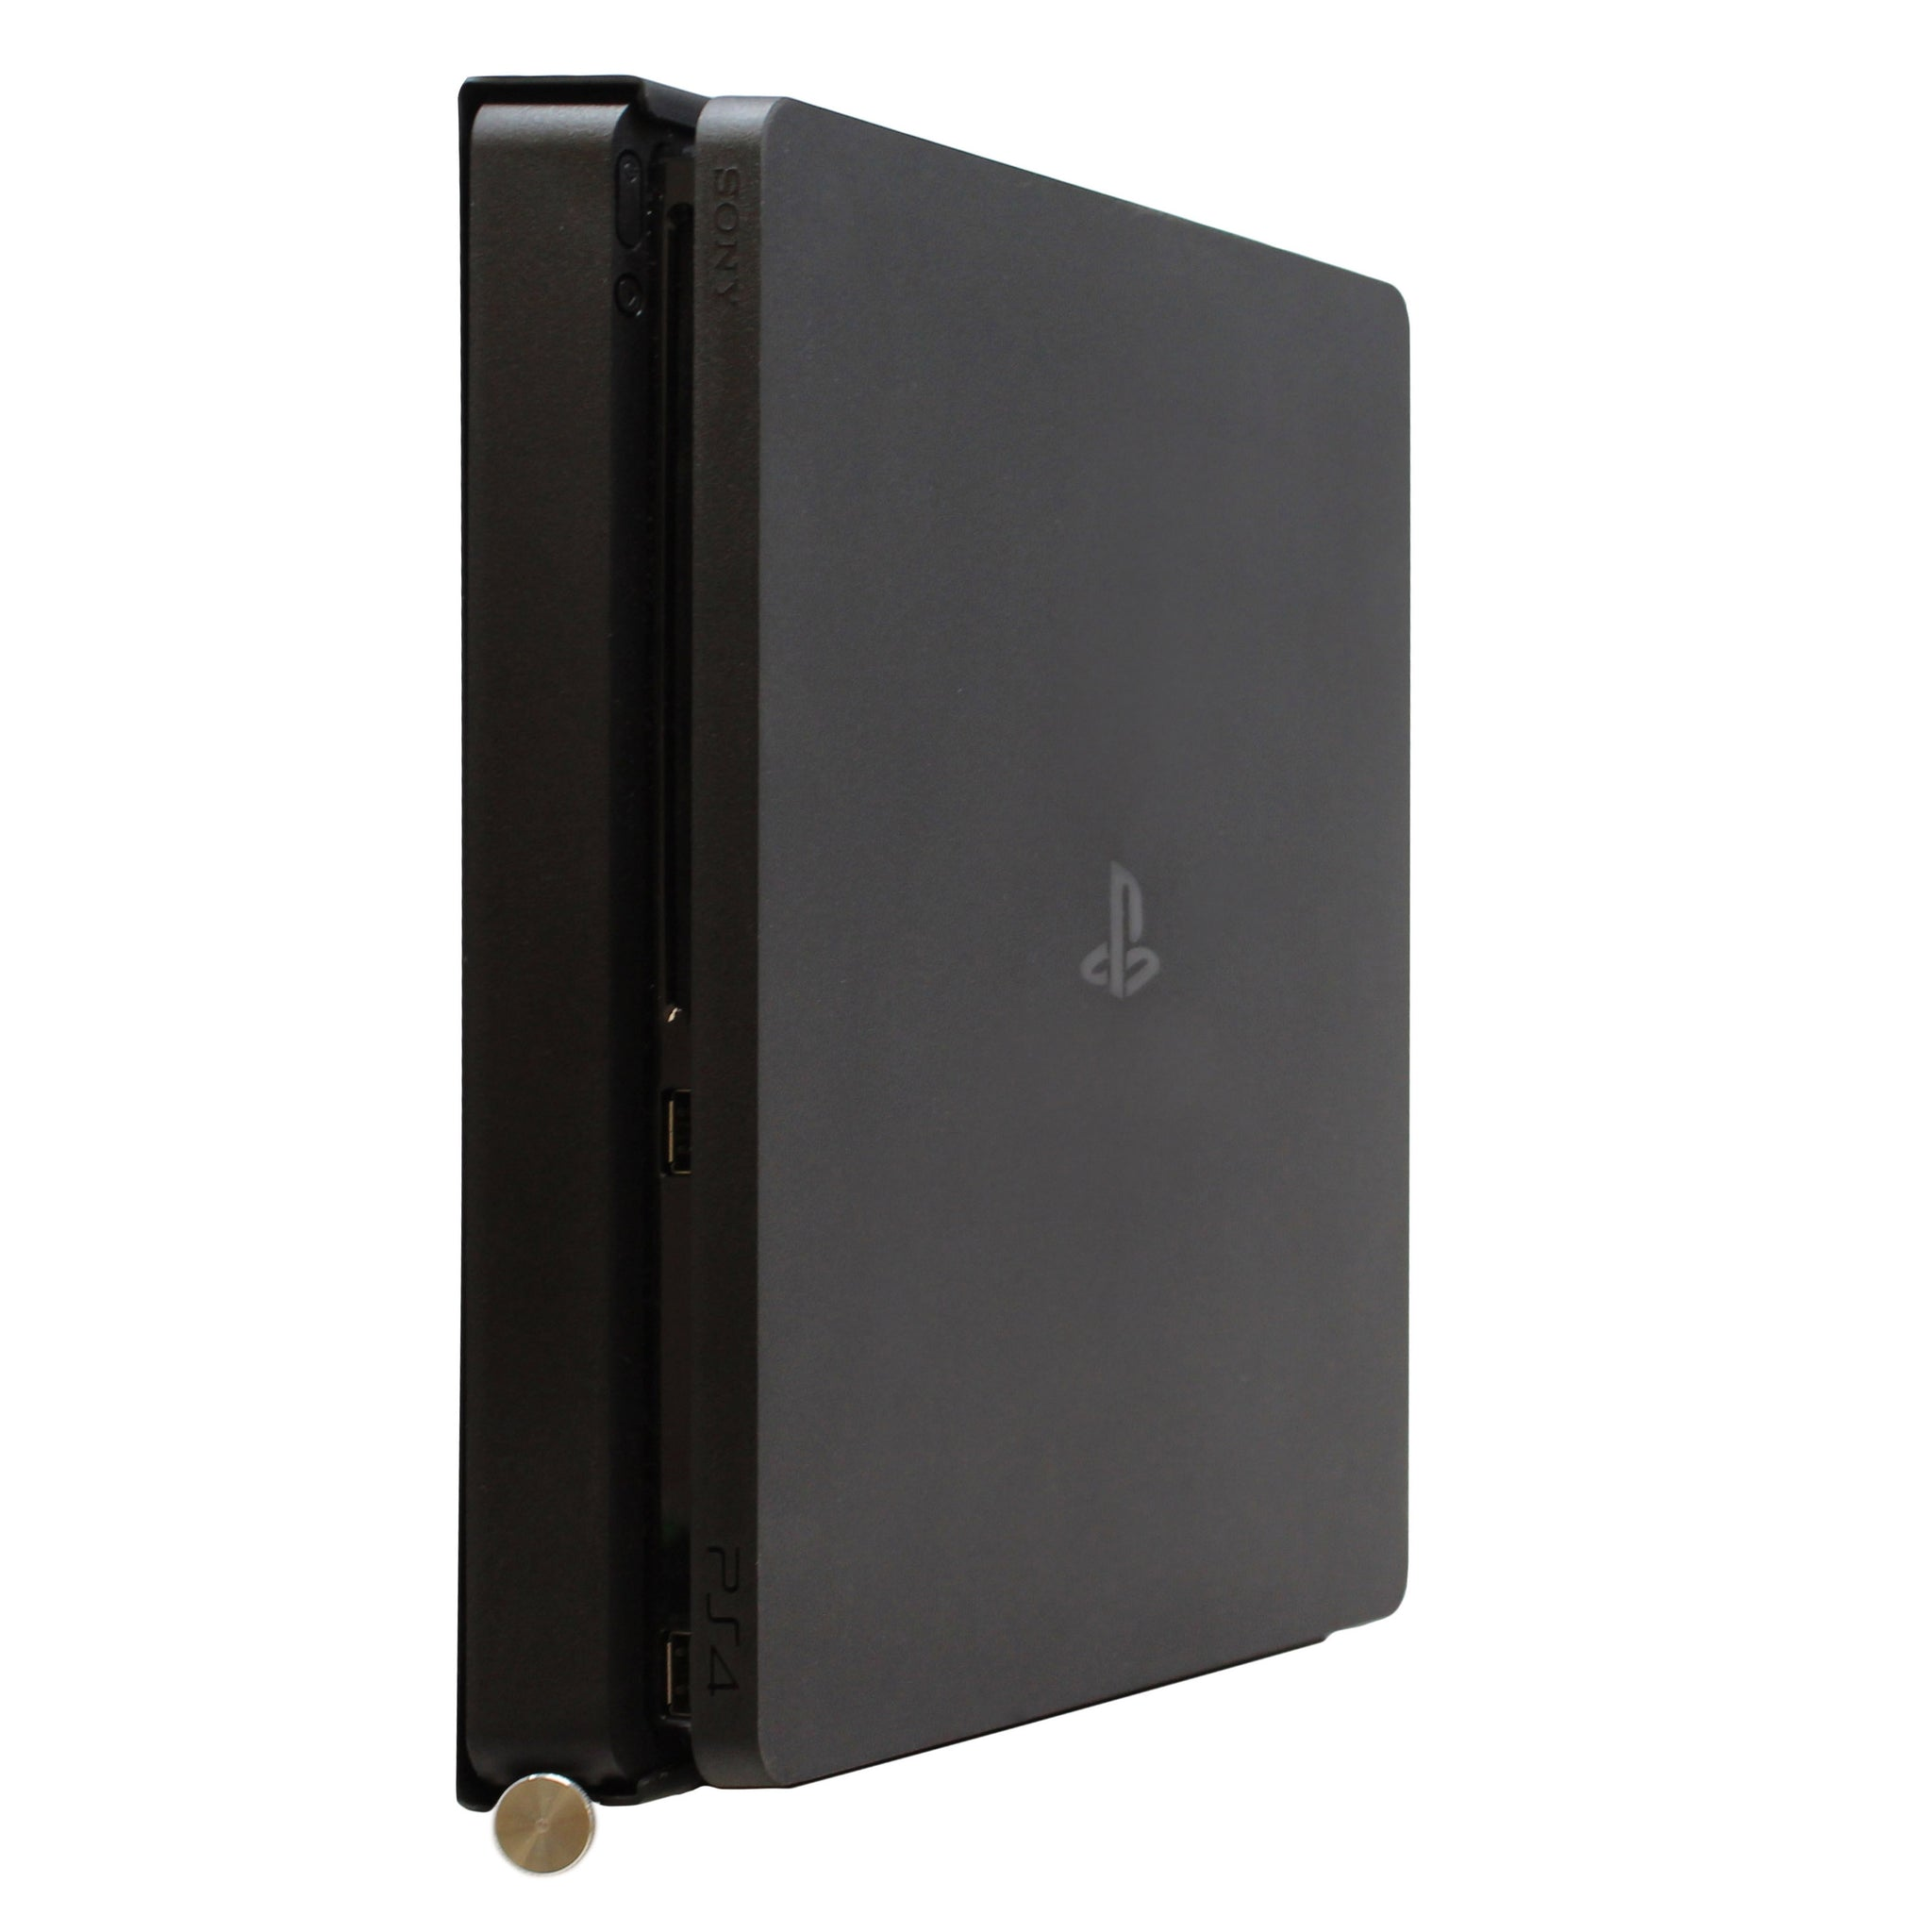 PlayStation 4 Slim Mount